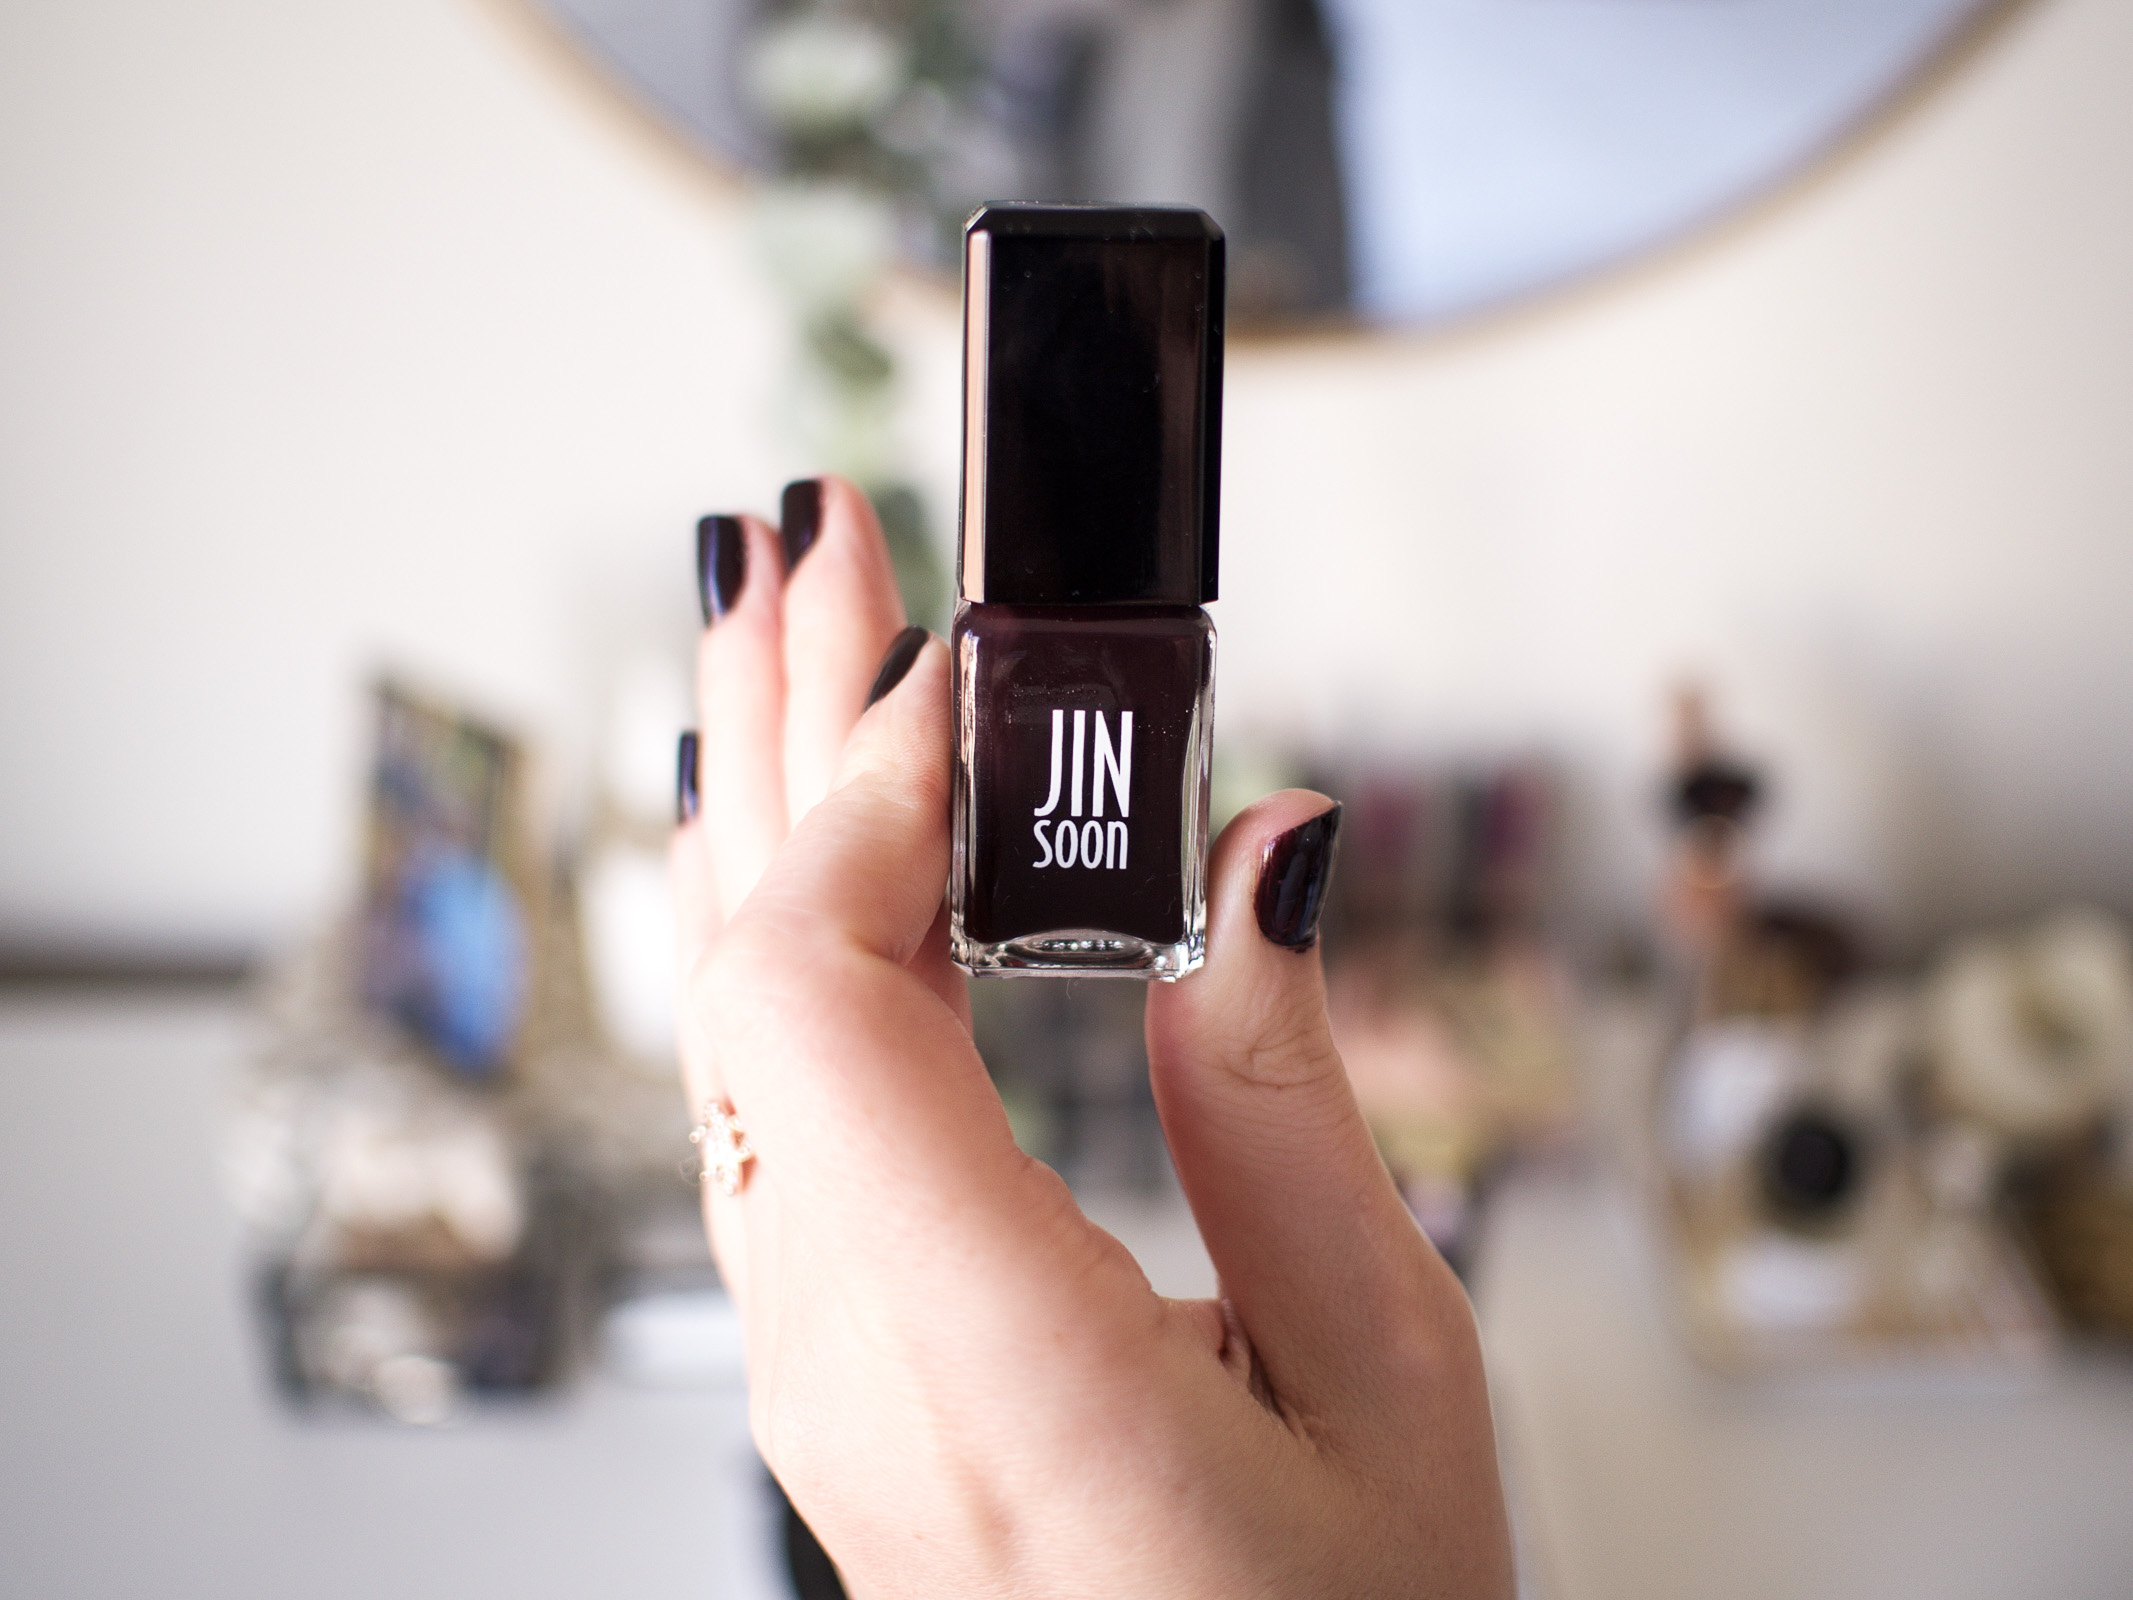 A Space NK Sale Haul | Jin Soon Nail Polish in in 'Risque' | Wolf & Stag